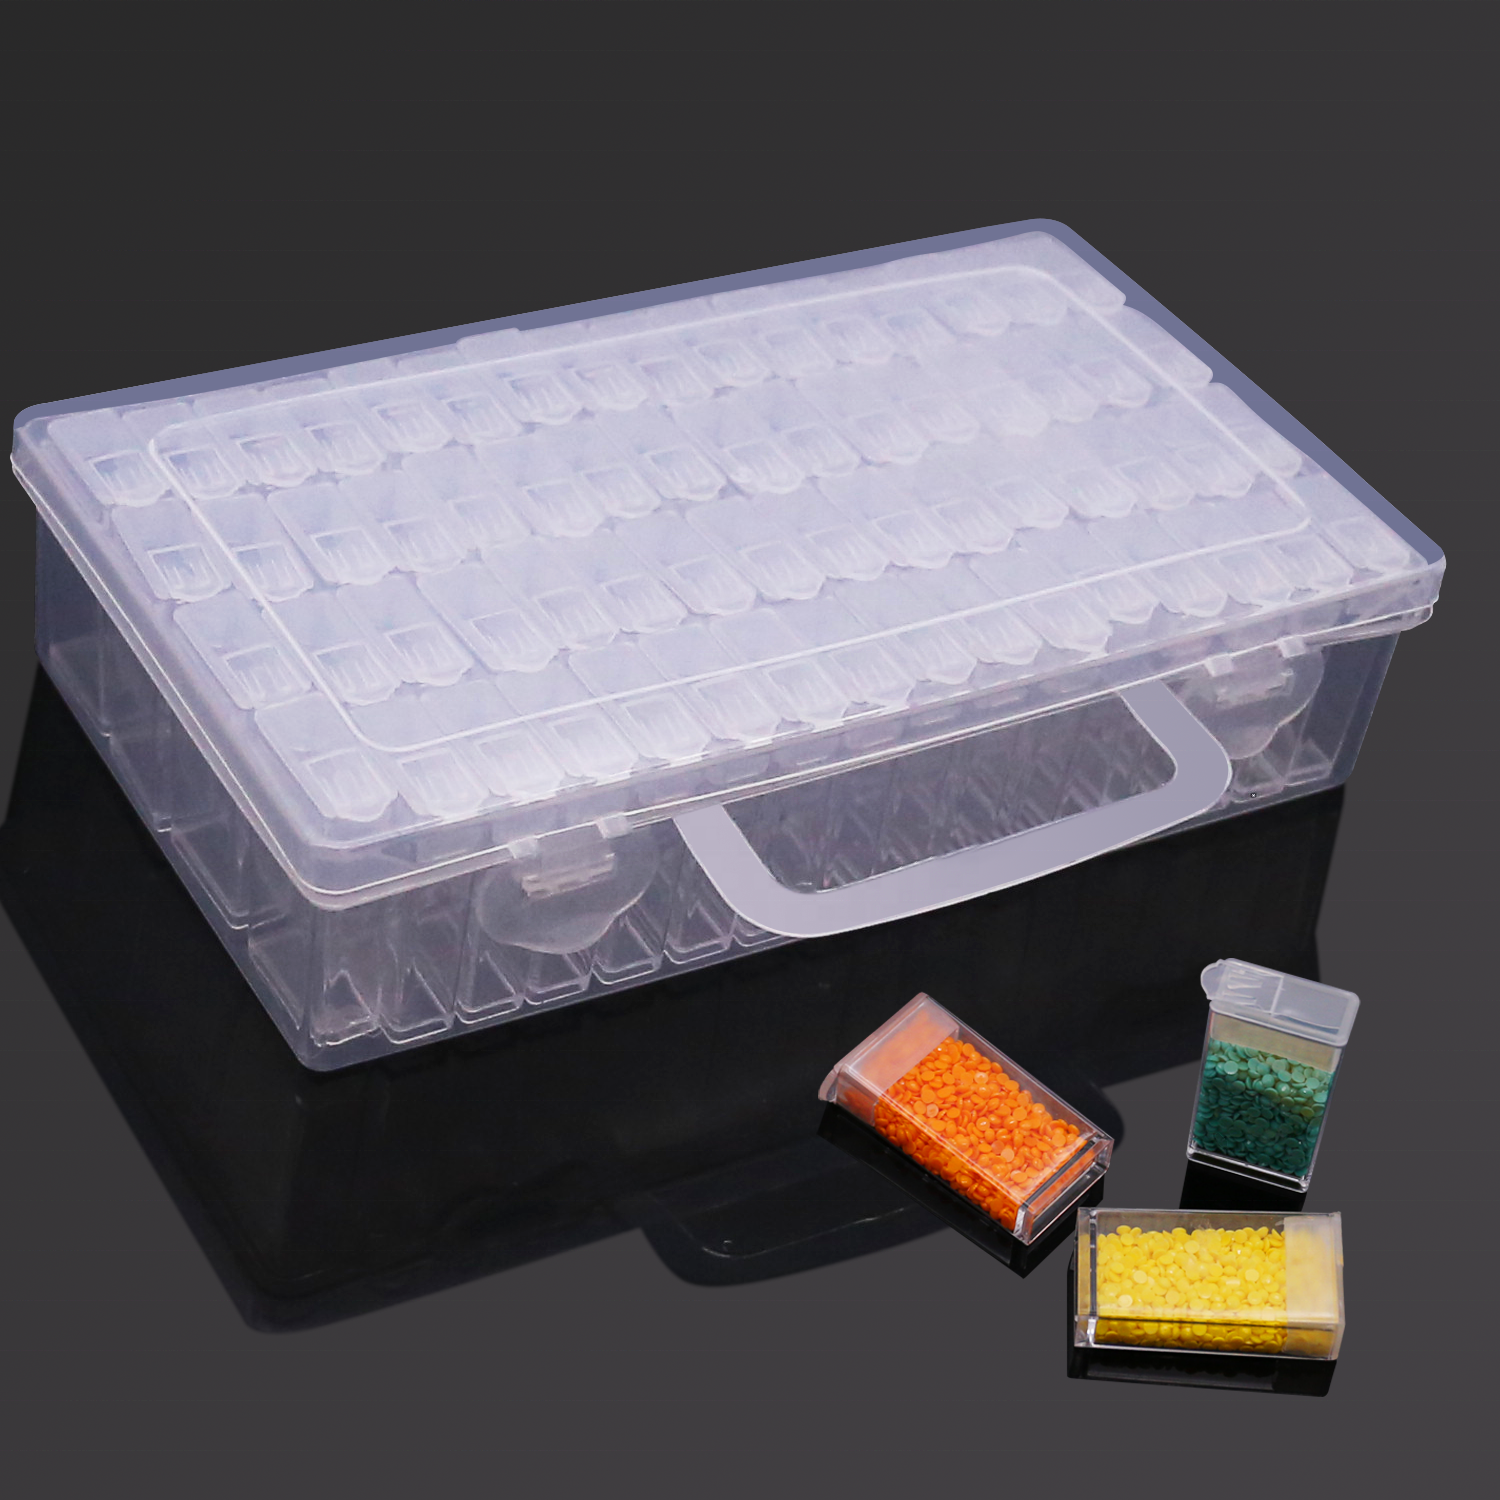 Diamond Painting Storage Box with 64 Grids Portable Bead Storage Container Diamond Painting Accessories